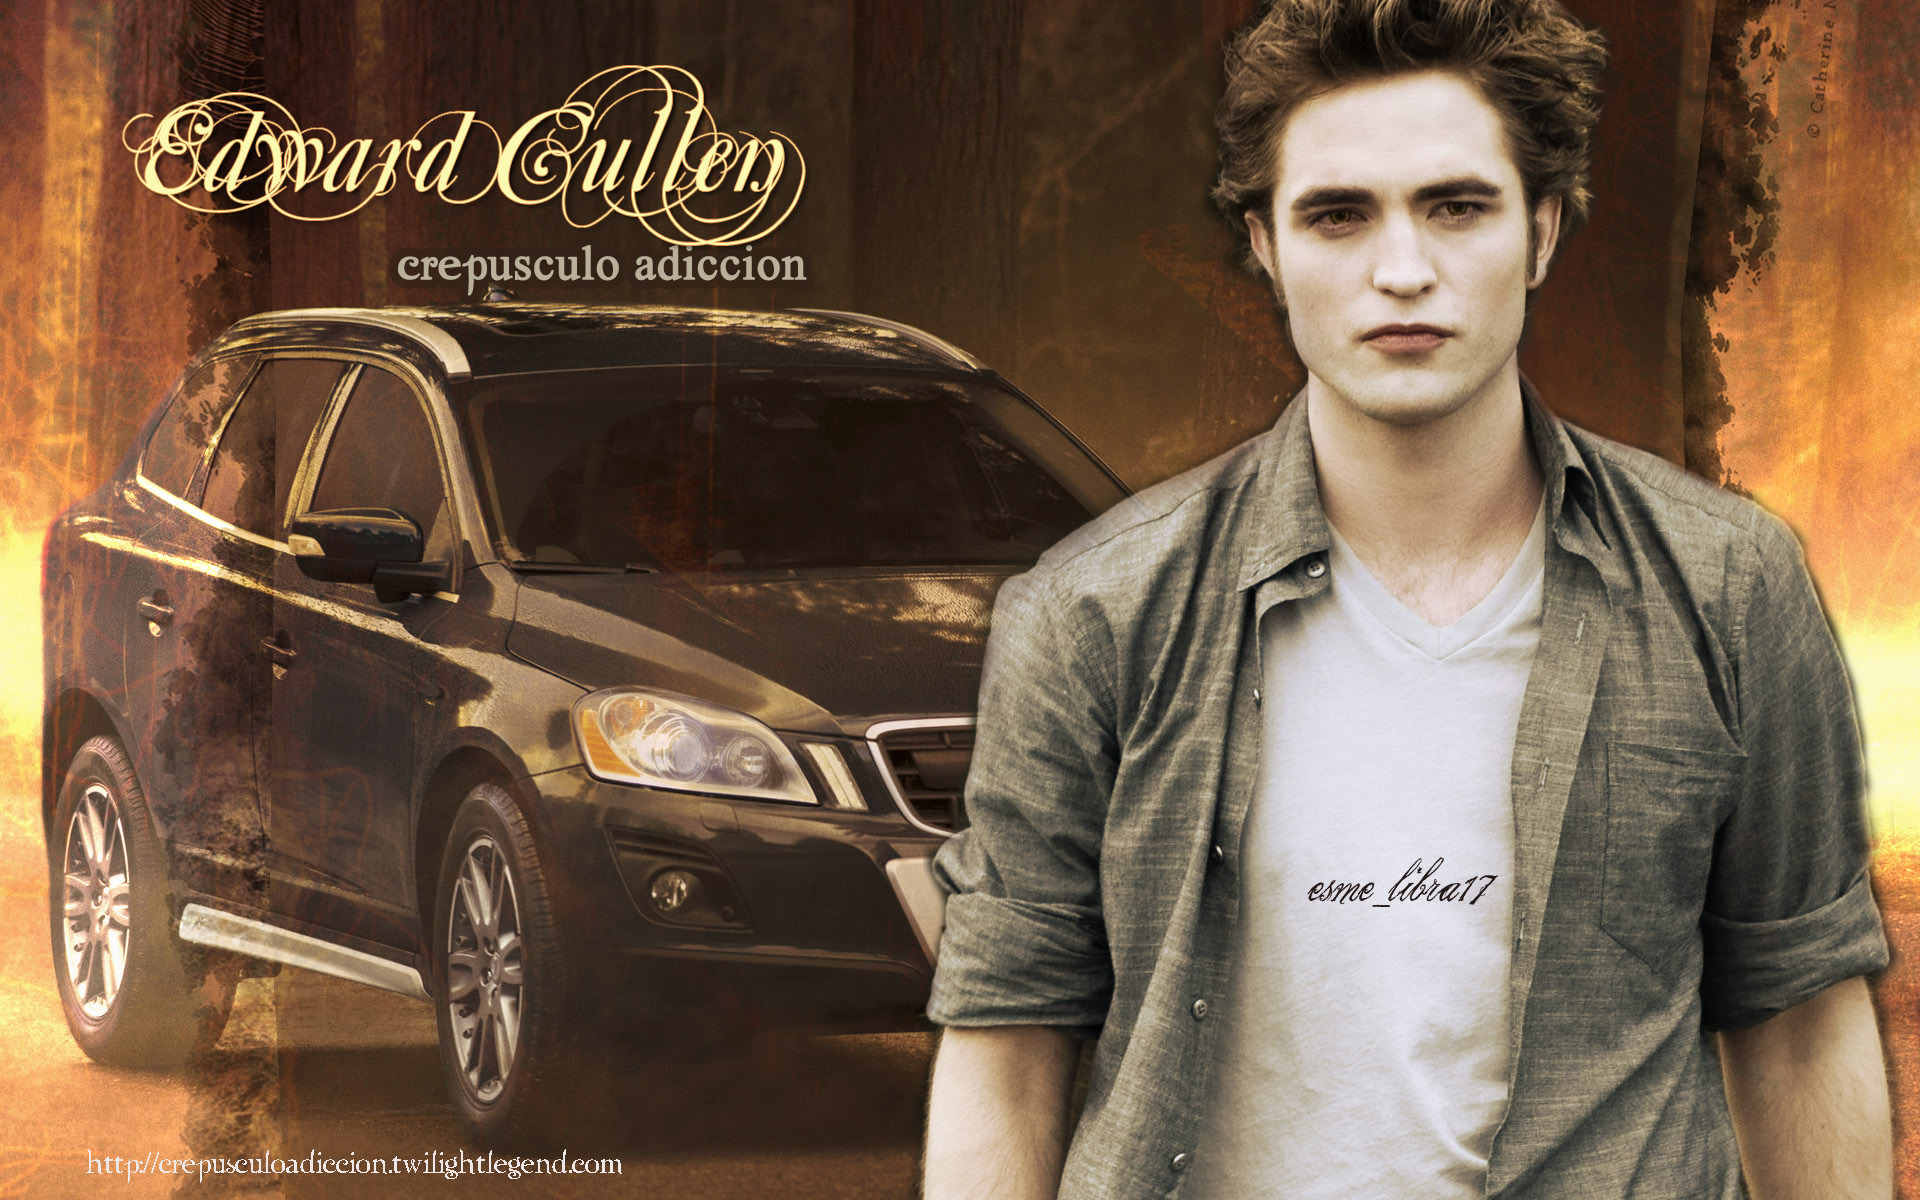 http://images2.fanpop.com/image/photos/9100000/edward-cullen-and-his-volvo-twilight-crepusculo-9168370-1920-1200.jpg